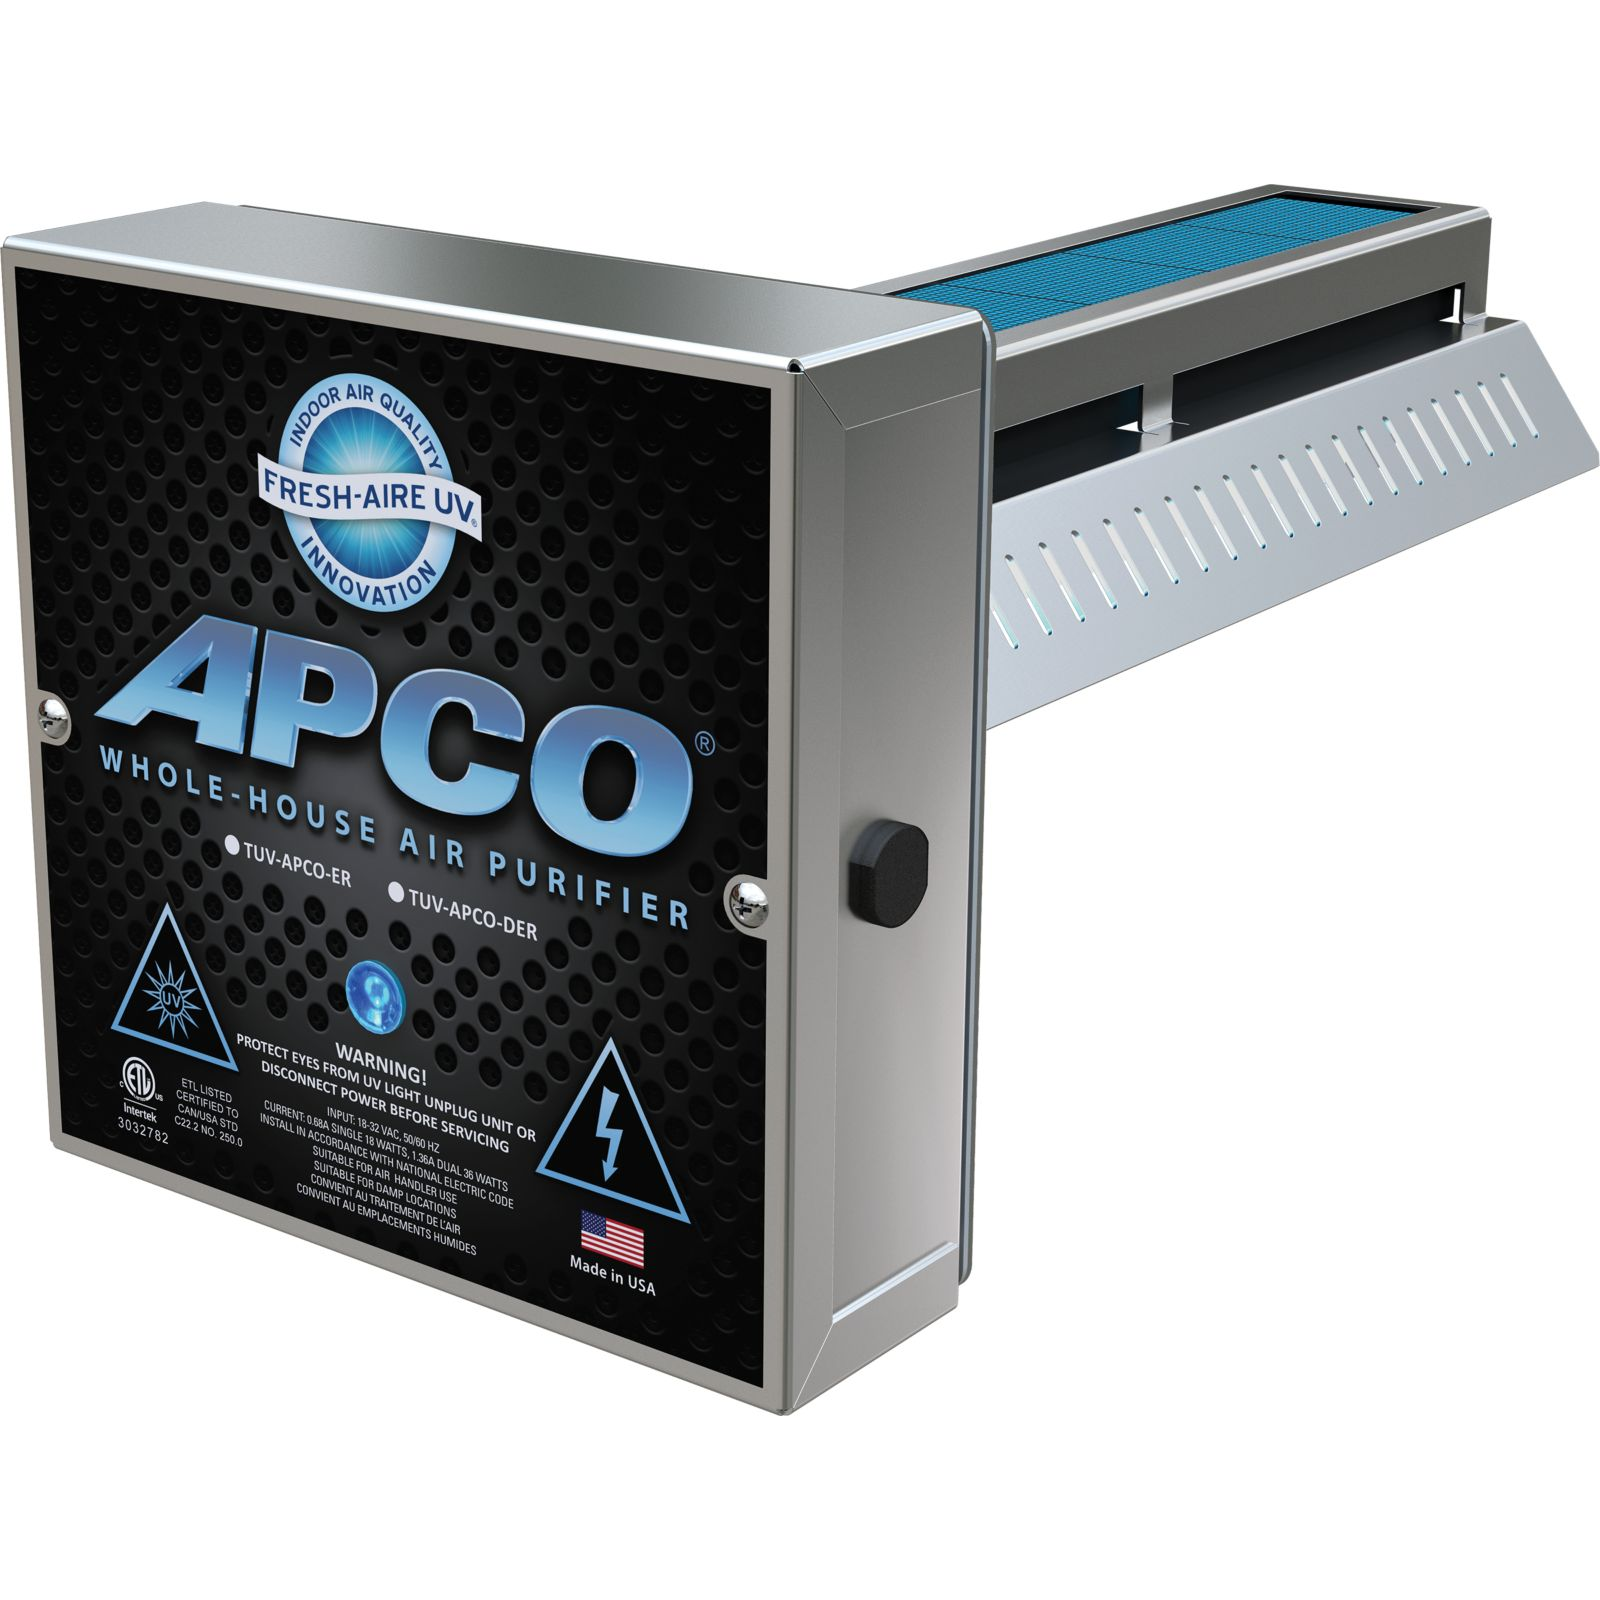 Fresh-Aire TUV-APCO-SI2 - Two Year Lamp (110-277) APCO In-Duct